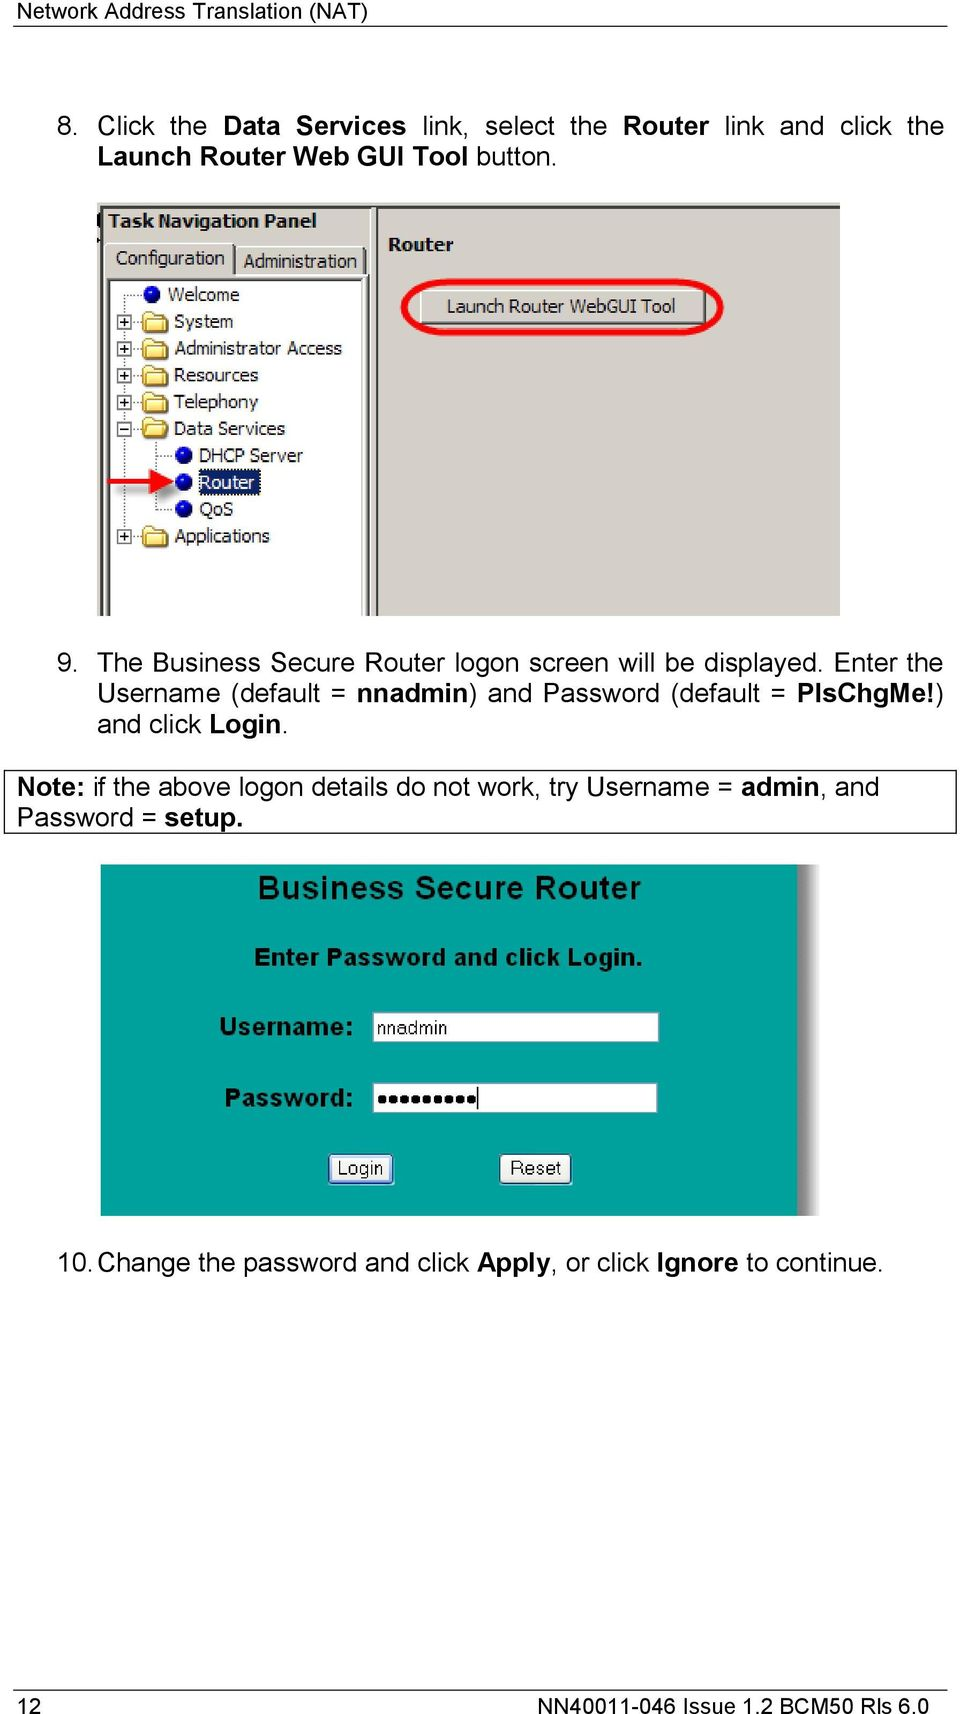 Enter the Username (default = nnadmin) and Password (default = PlsChgMe!) and click Login.